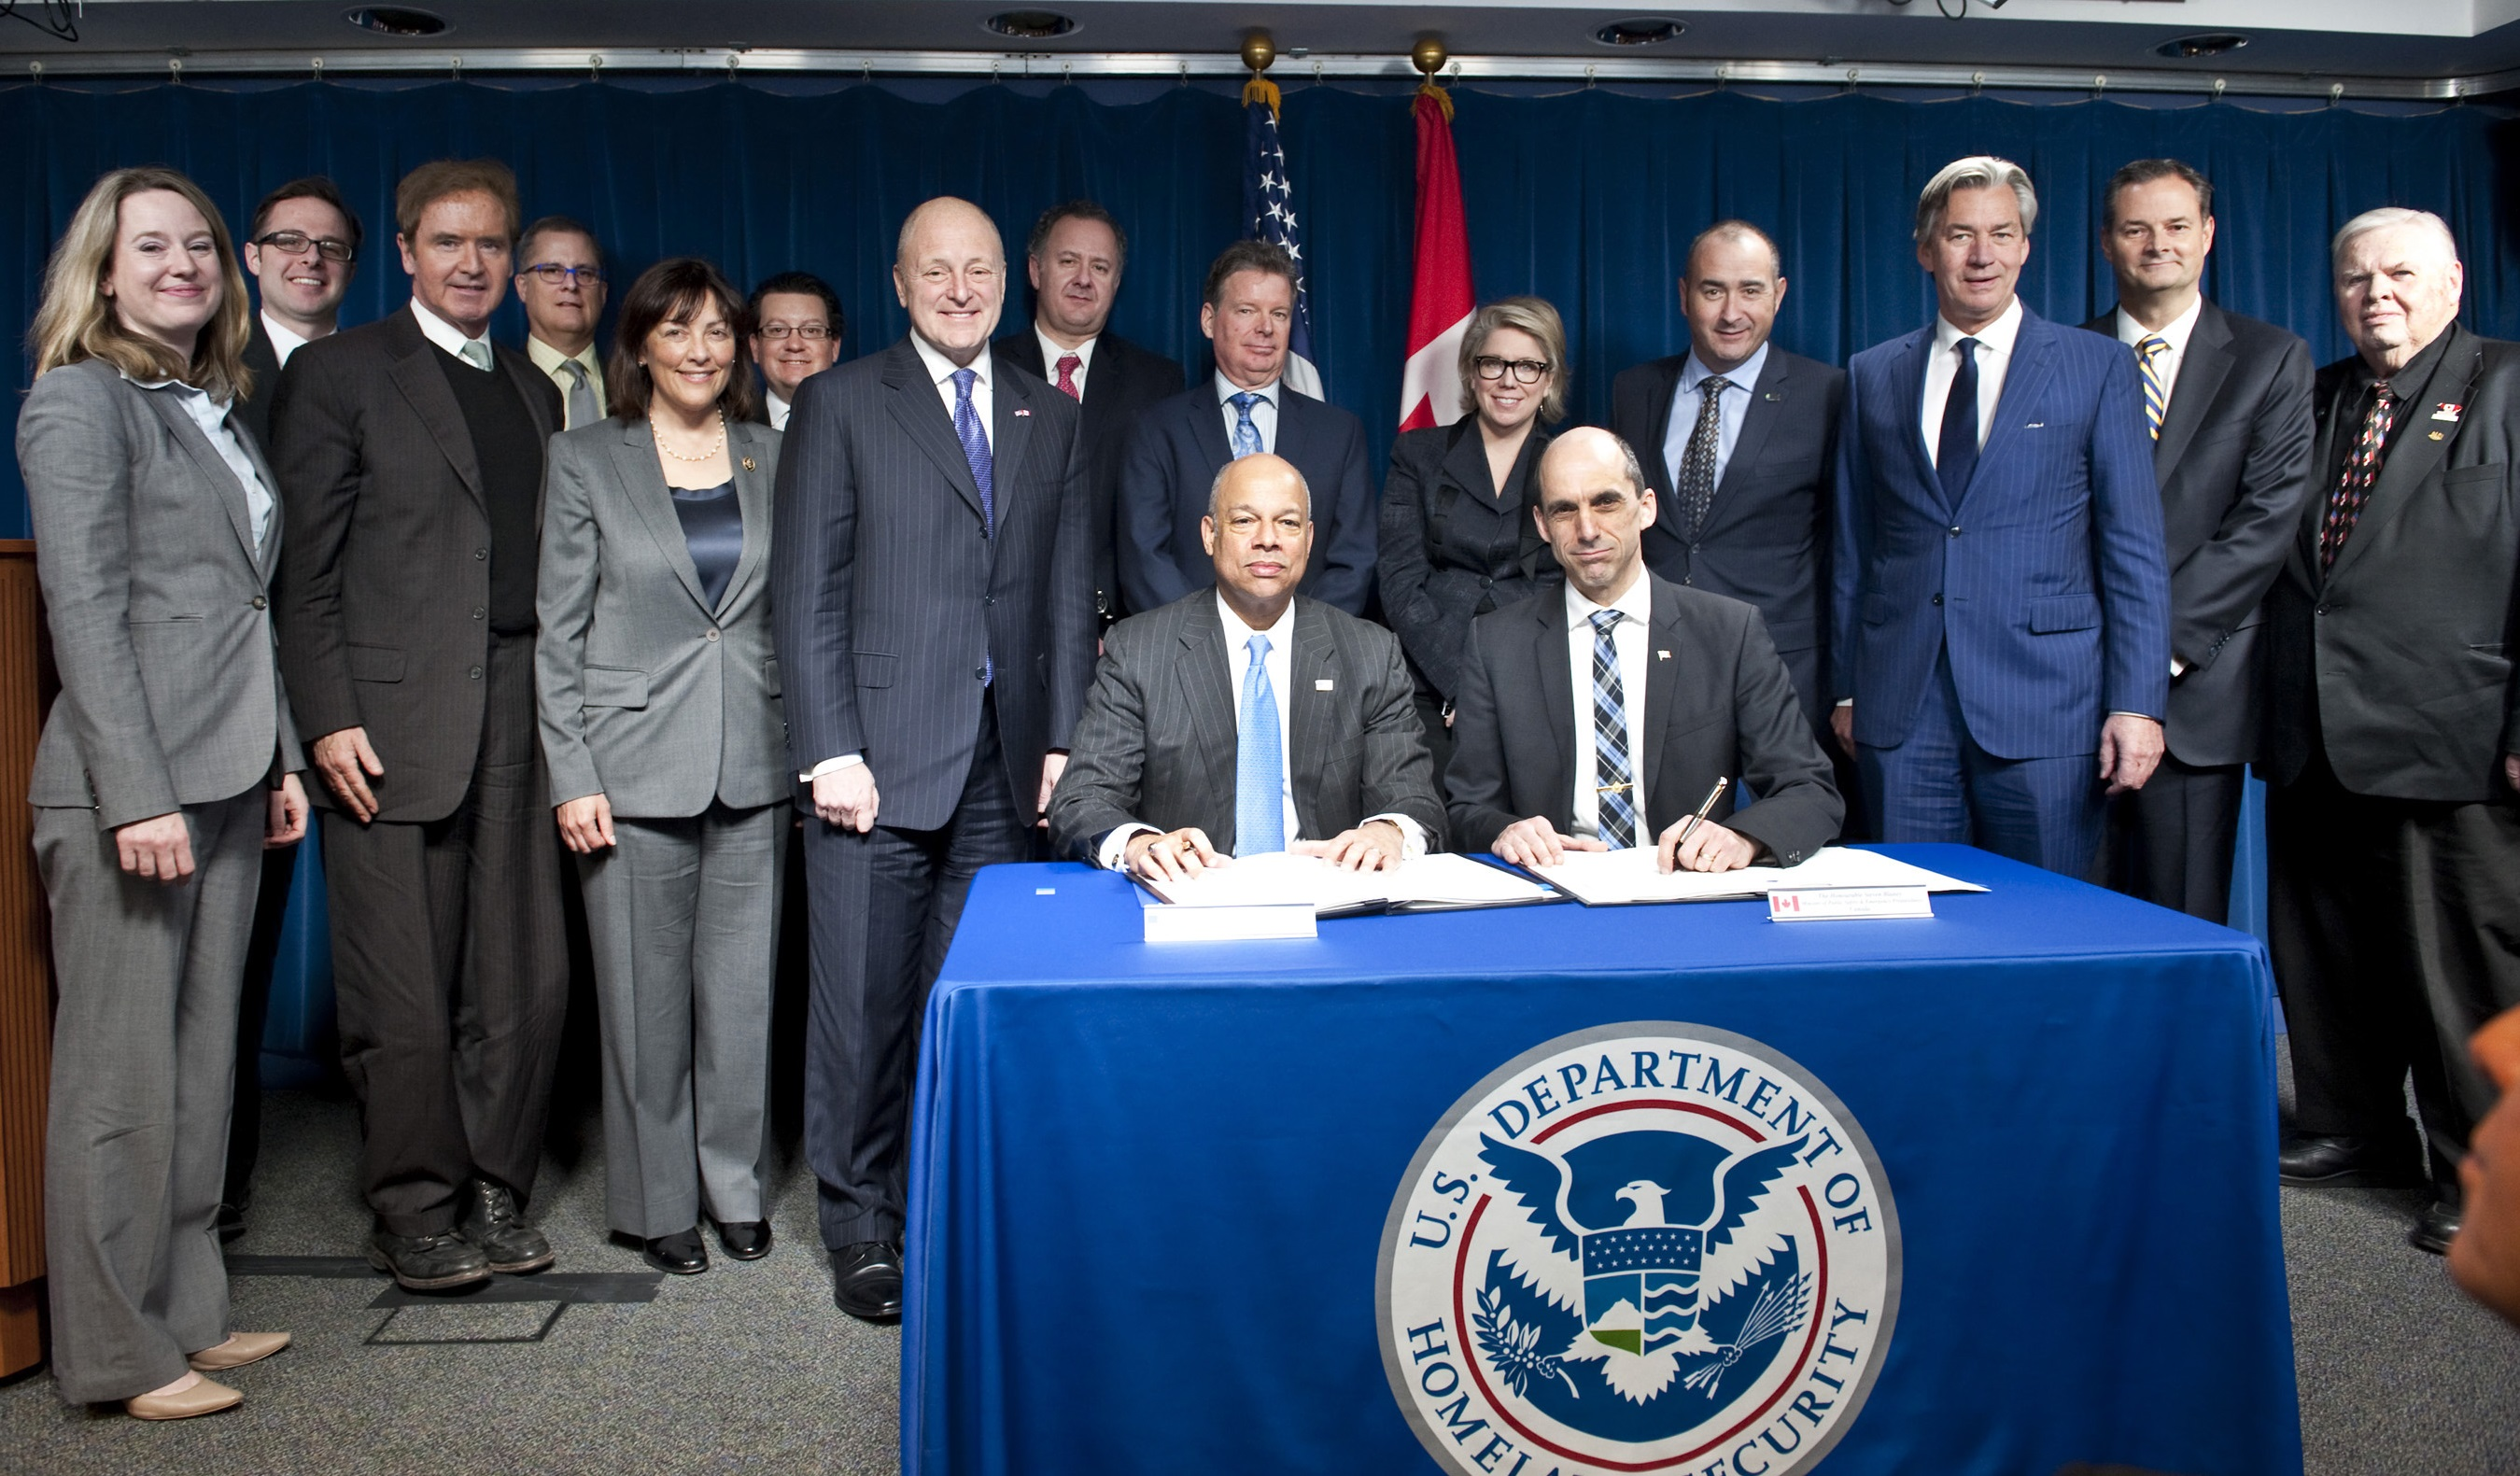 Today, Canada's Minister of Public Safety and Emergency Preparedness, the Honourable Steven Blaney; and U.S.  Secretary of Homeland Security, Jeh Johnson, signed the Agreement on Land, Rail, Marine and Air Transport Preclearance between the Government of Canada and the Government of the United States of America.